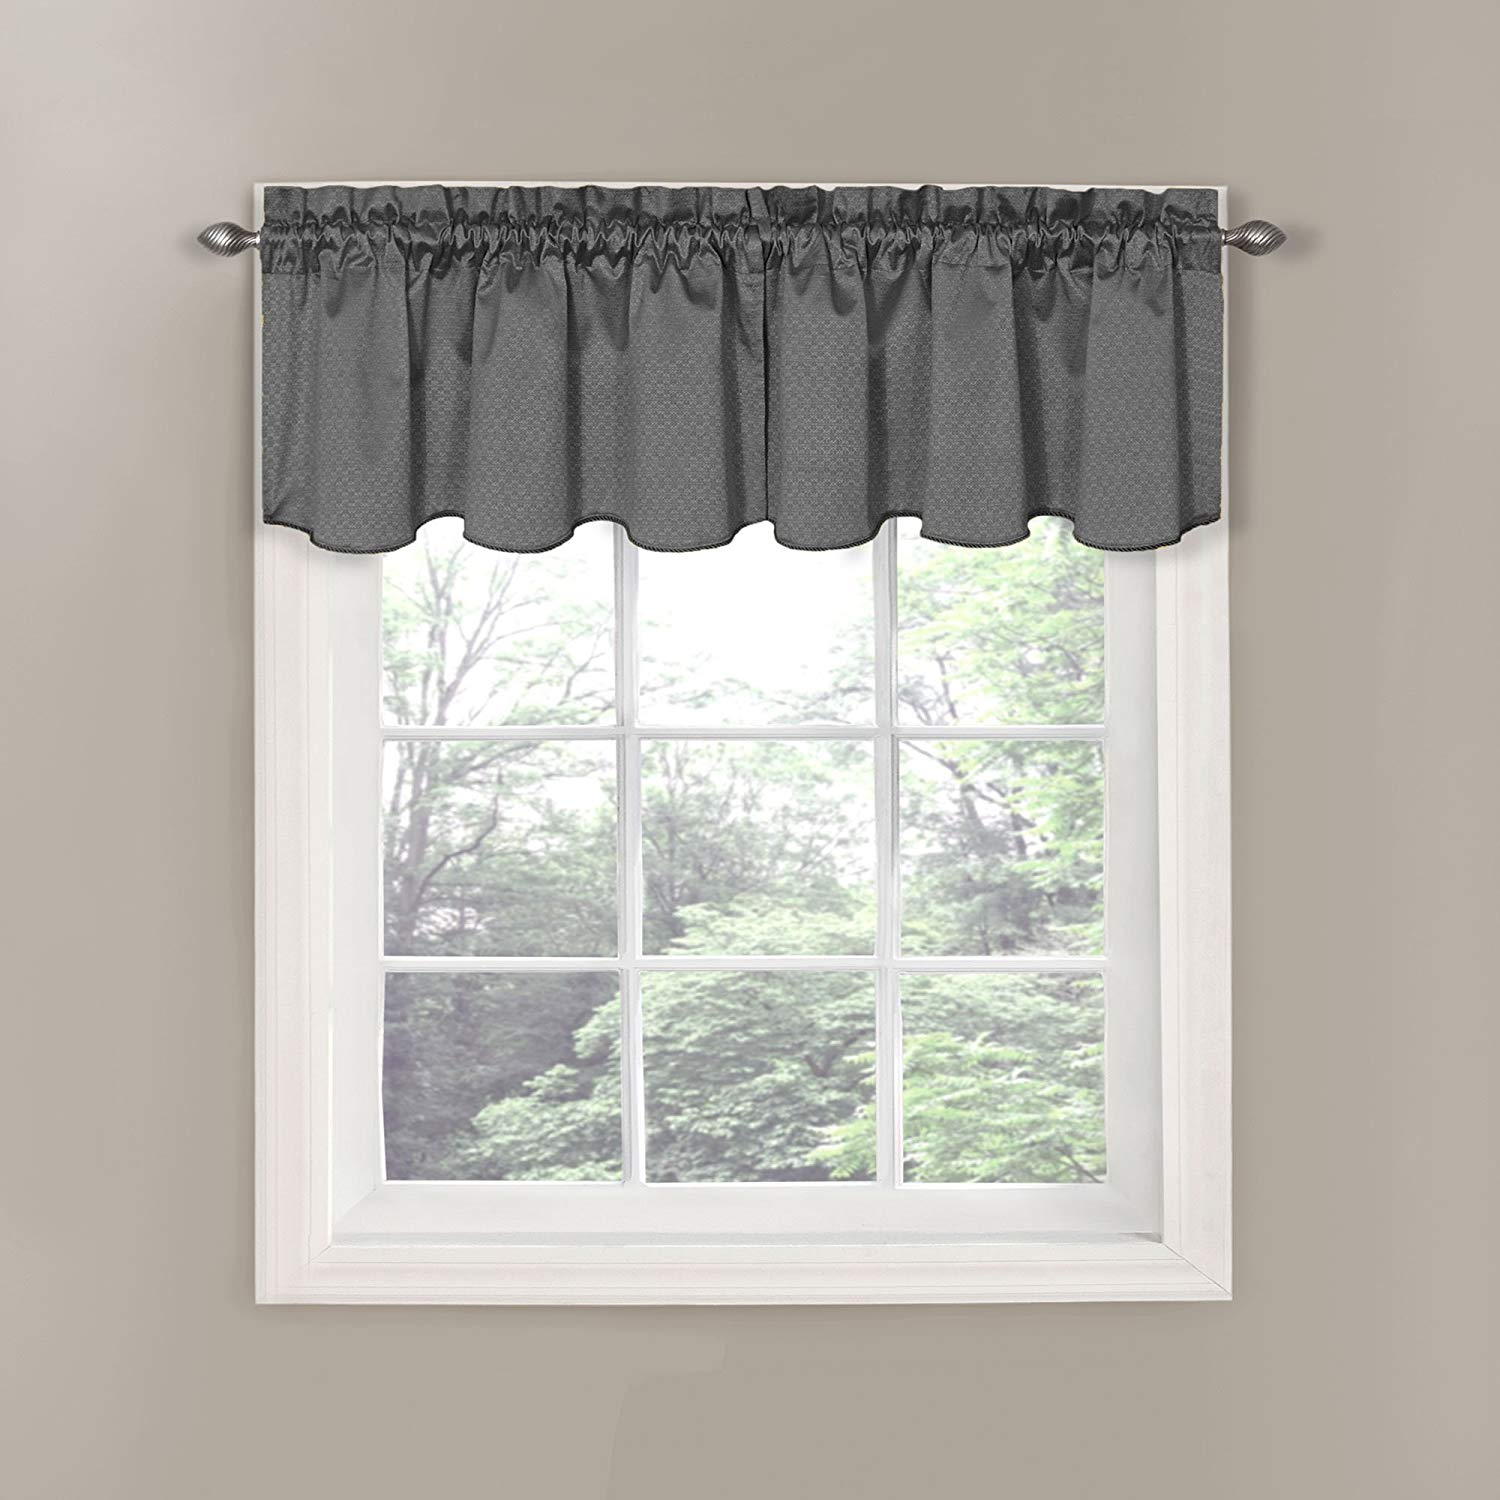 Make Your Window And Curtains Attractive By Installing